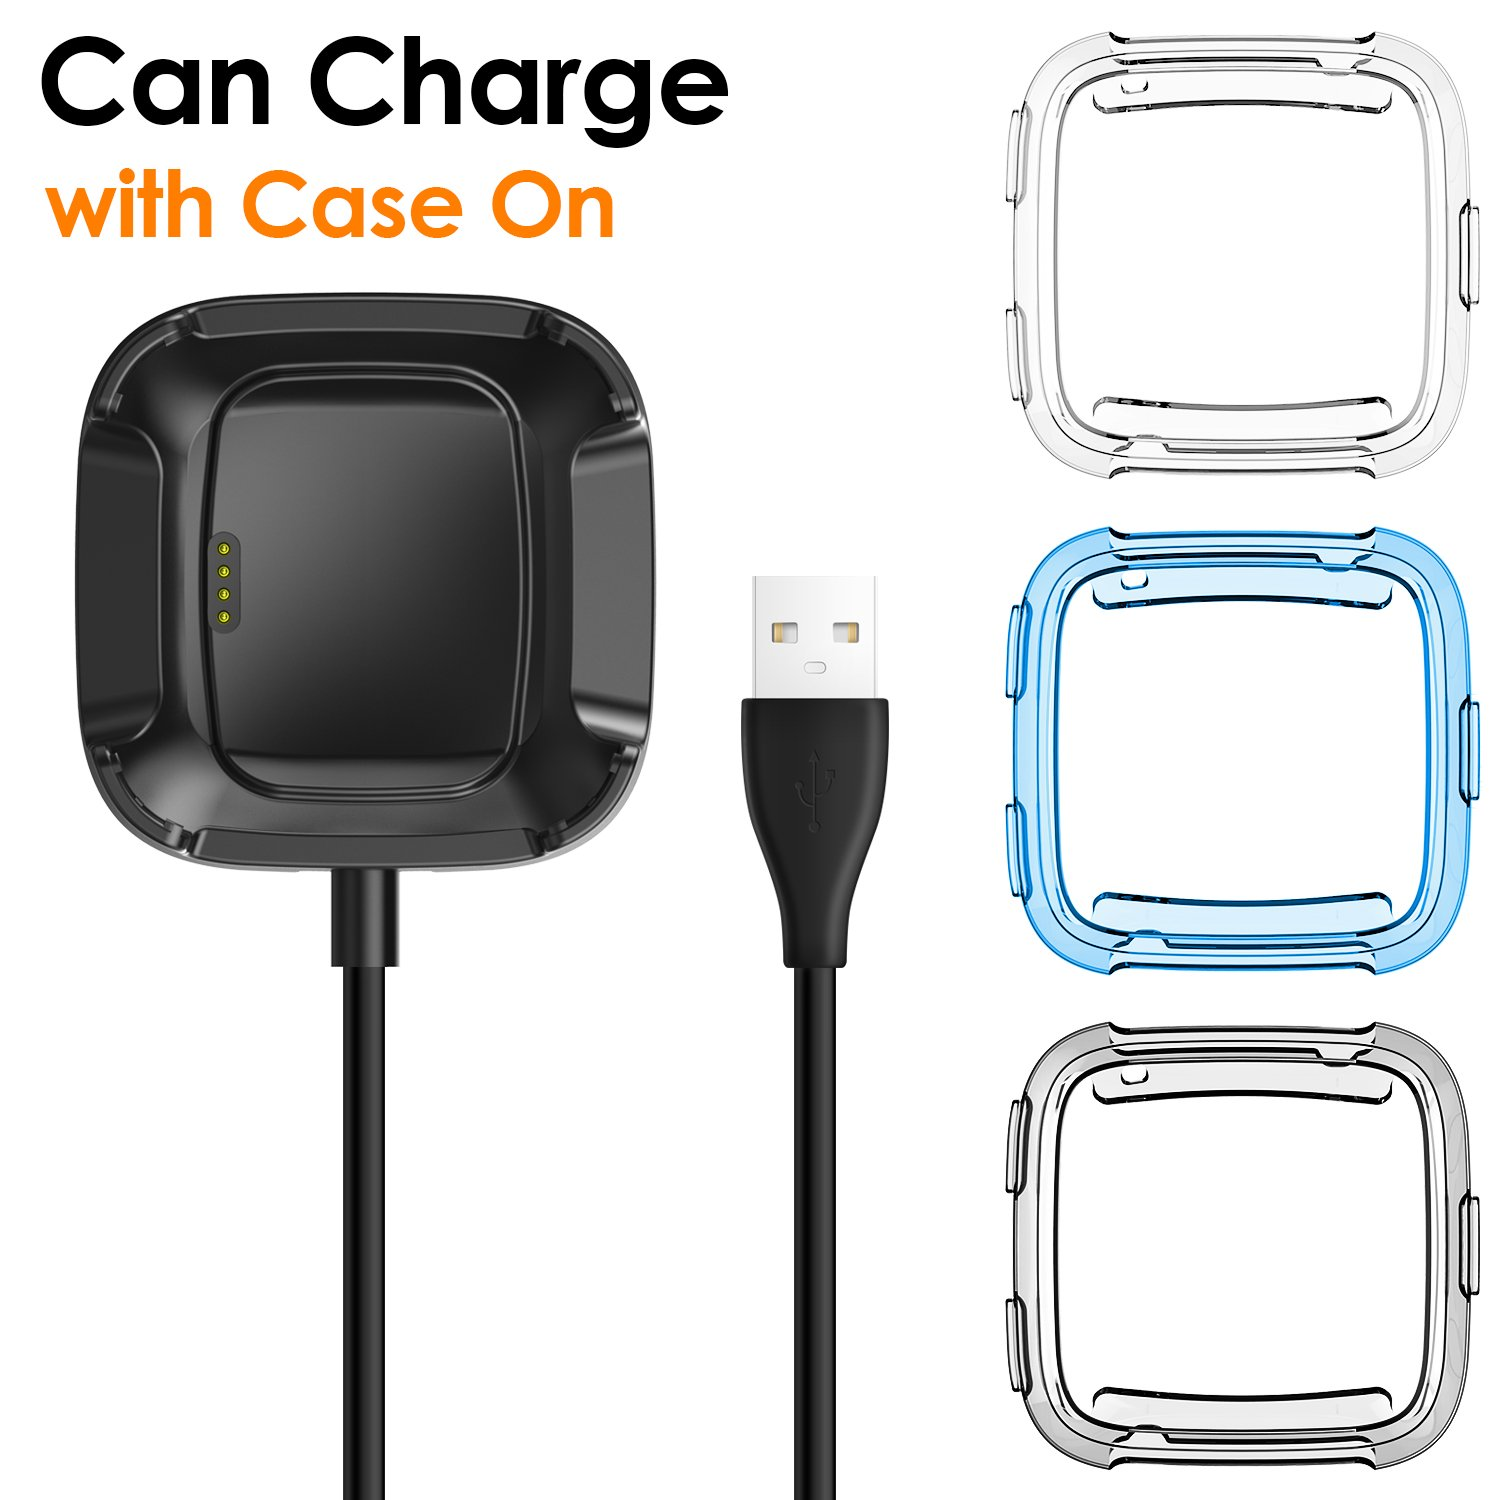 EZCO Fitbit Versa Case with Fitbit Versa Charger [3 +1 Pack], Exclusive Charging Cable (Can Charge with Case On), Soft TPU Protective Cover Shell Bumper Case Protector for Fitbit Versa Smartwatch